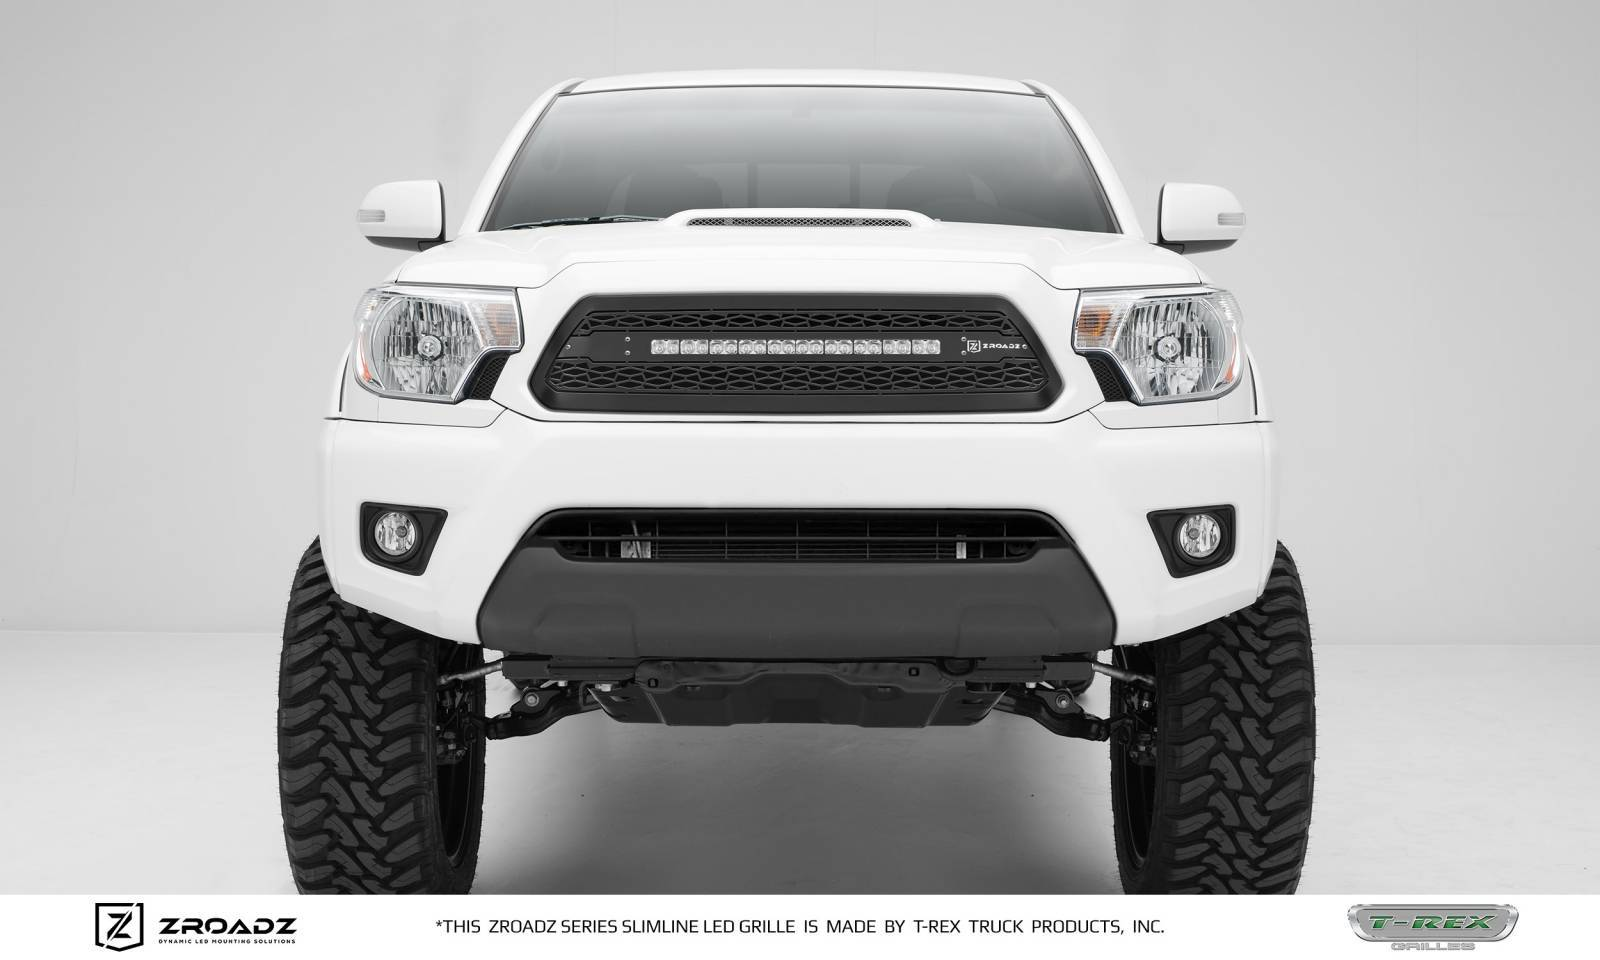 Toyota tacoma zroadz series main insert grille w one 20 inch toyota tacoma zroadz series main insert grille w one 20 inch slim line single row led light bar includes universal wiring harness part z319381 aloadofball Image collections